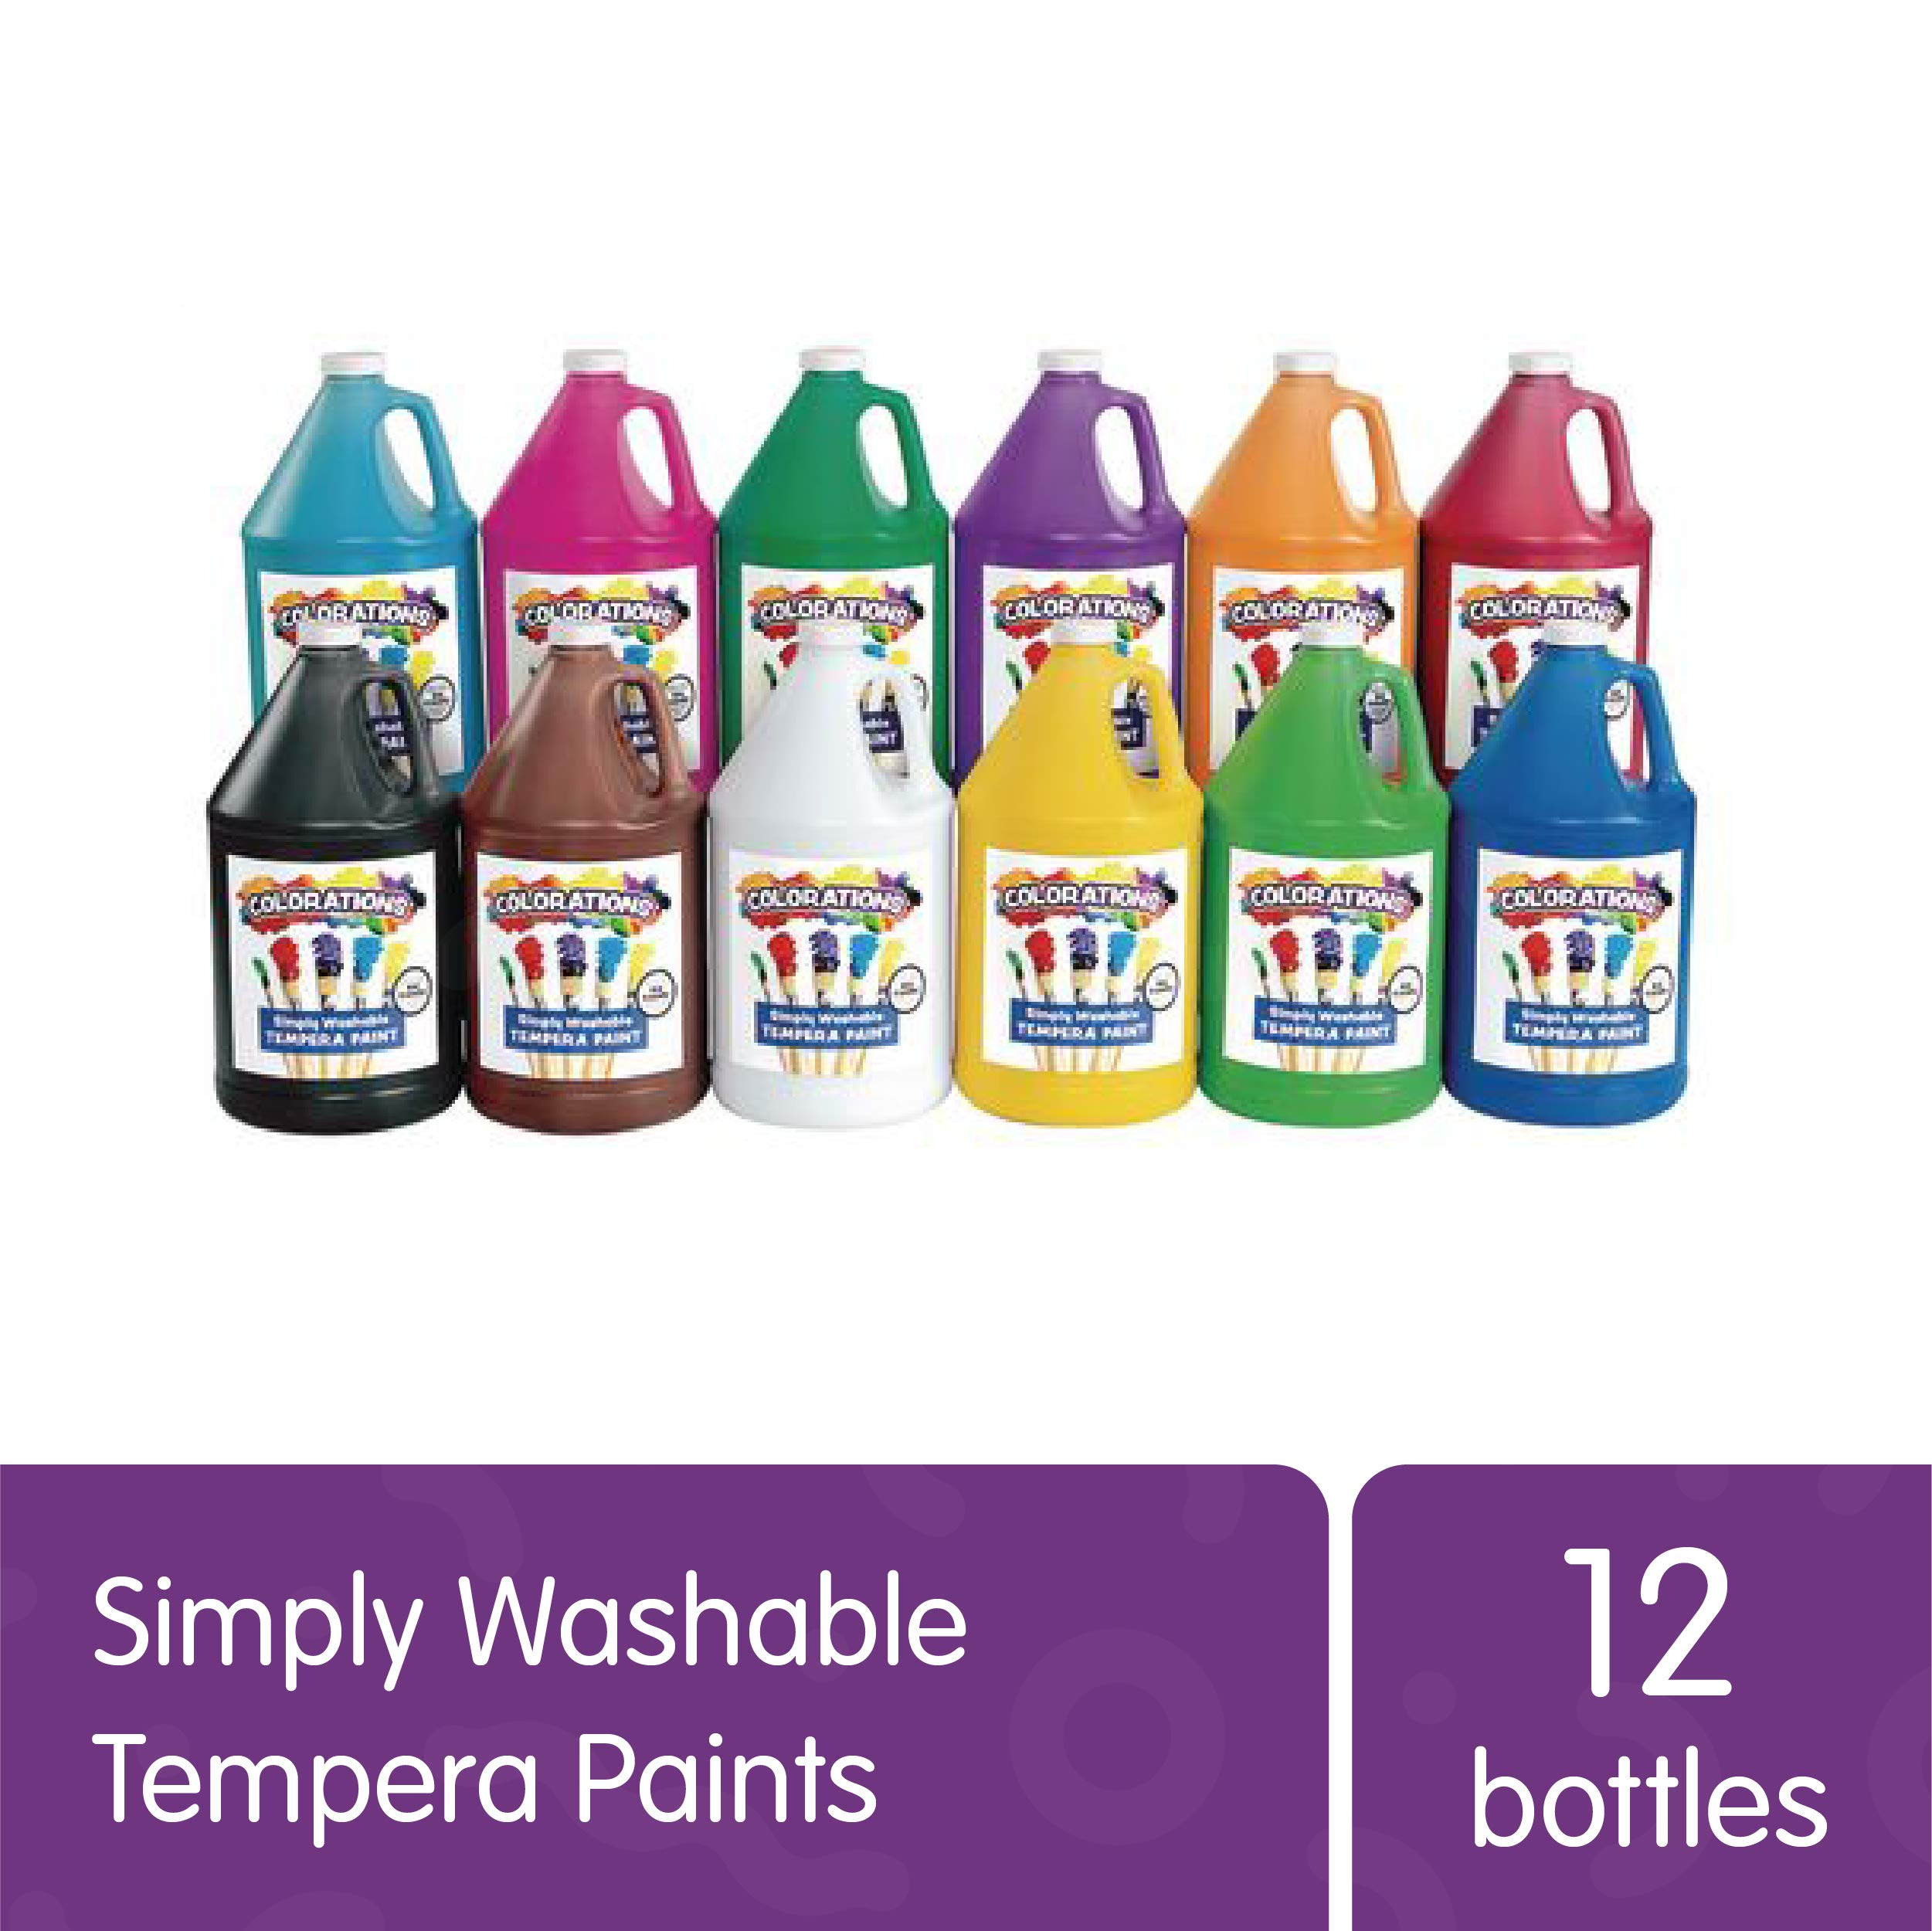 Colorations Washable Tempera Paint, Gallon Size, Set of 12 Colors, Non Toxic, Vibrant, Bold, Kids Paint, Craft, Hobby, Fun, Art Supplies, Paint Set (Item # SWTGAL) by Colorations